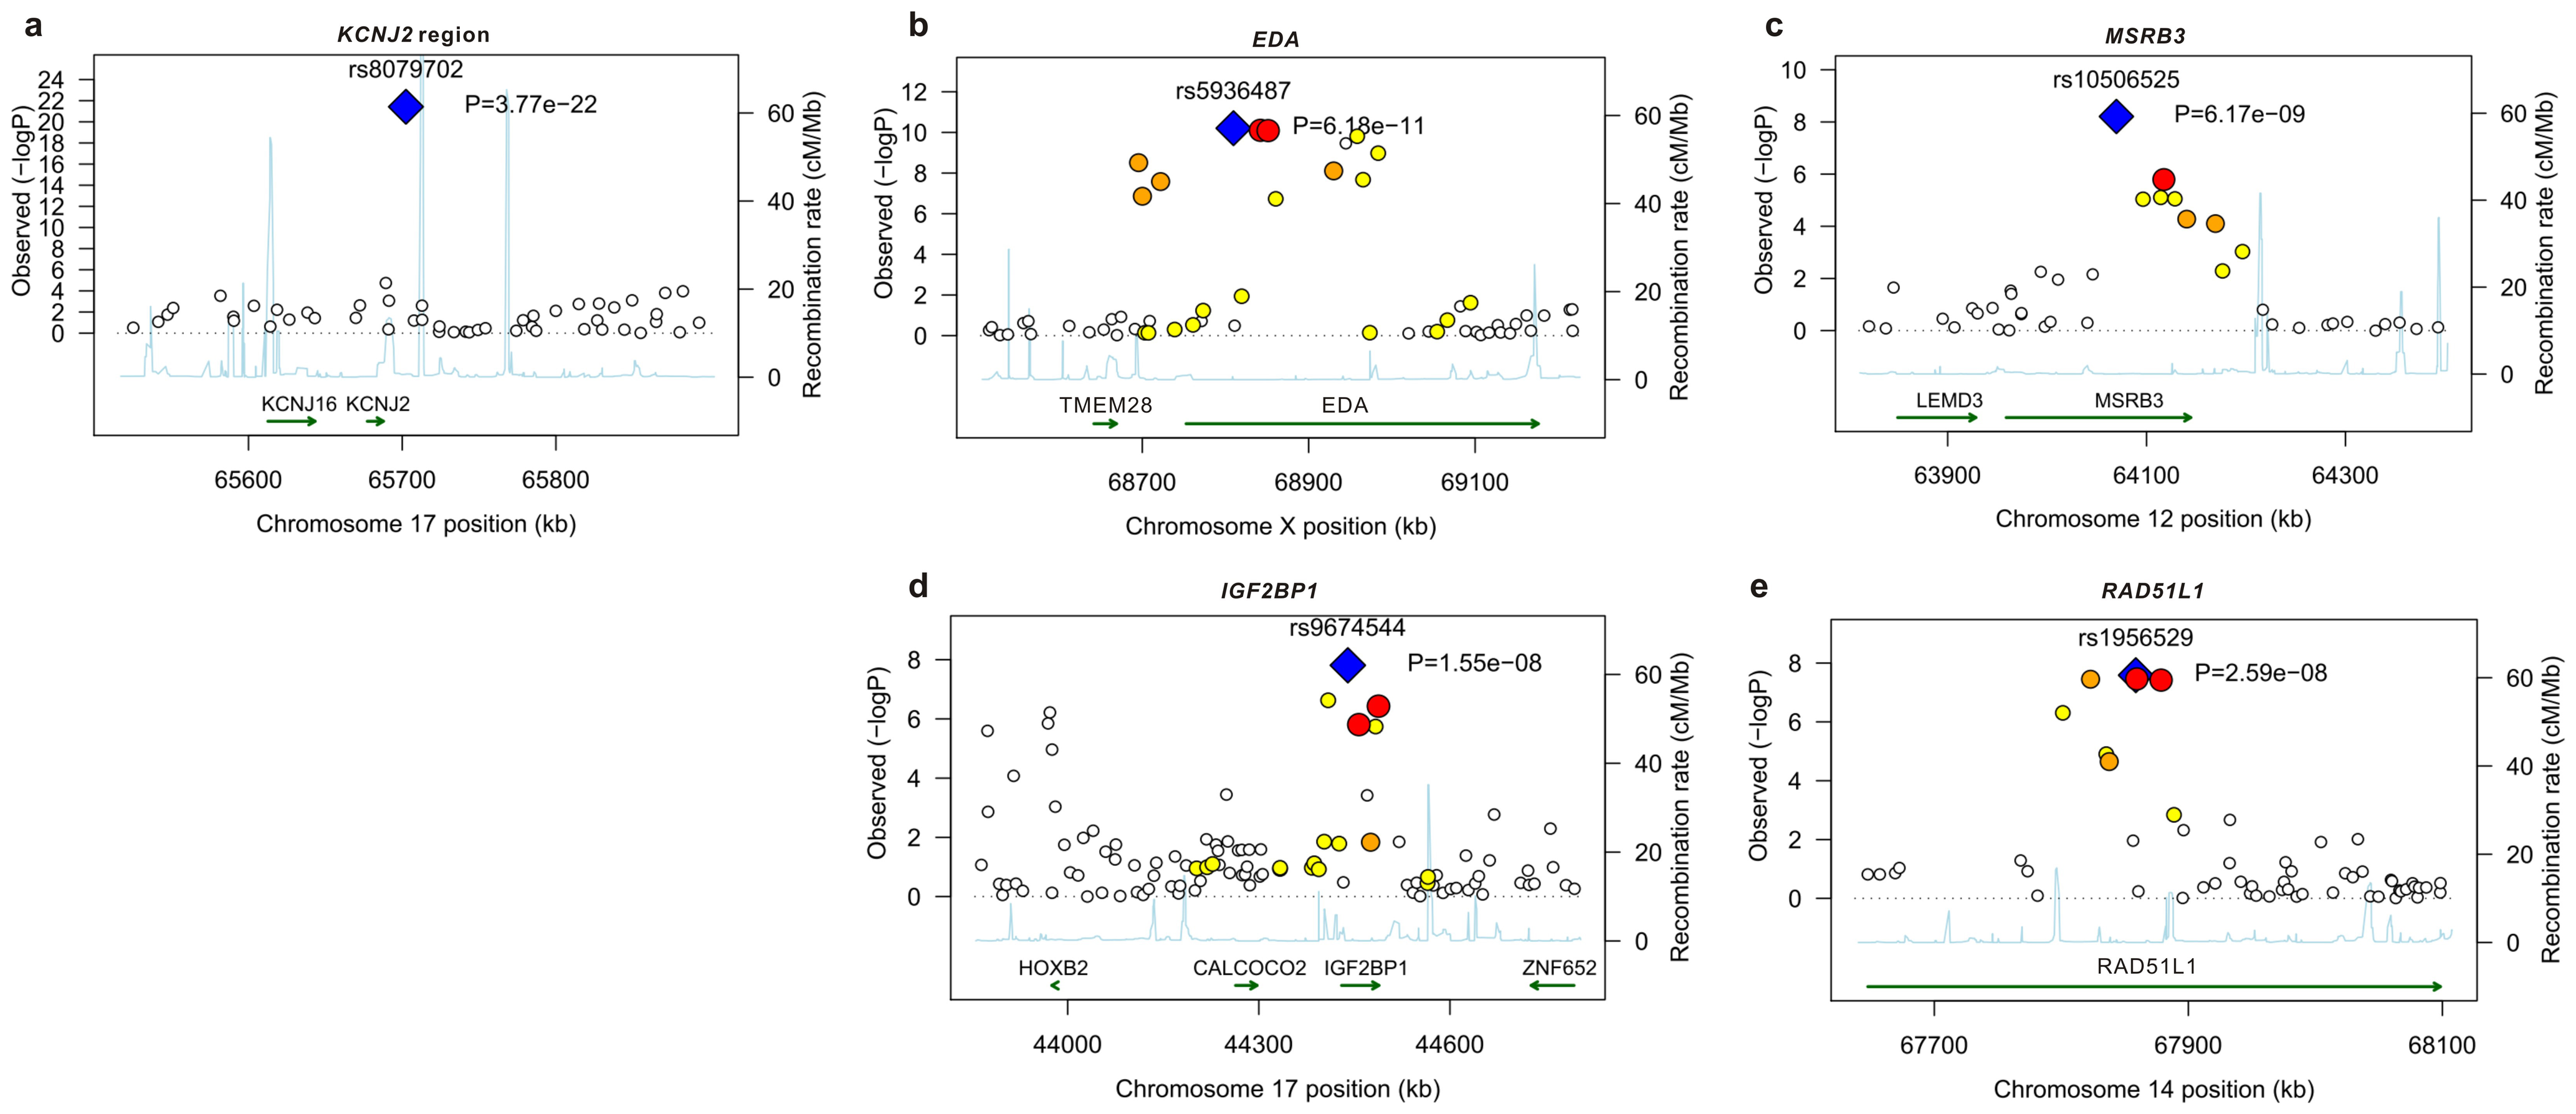 Linkage disequilibrium and association at loci reaching genome-wide significance for primary tooth development in meta-analysis of NFBC1966 and ALSPAC.